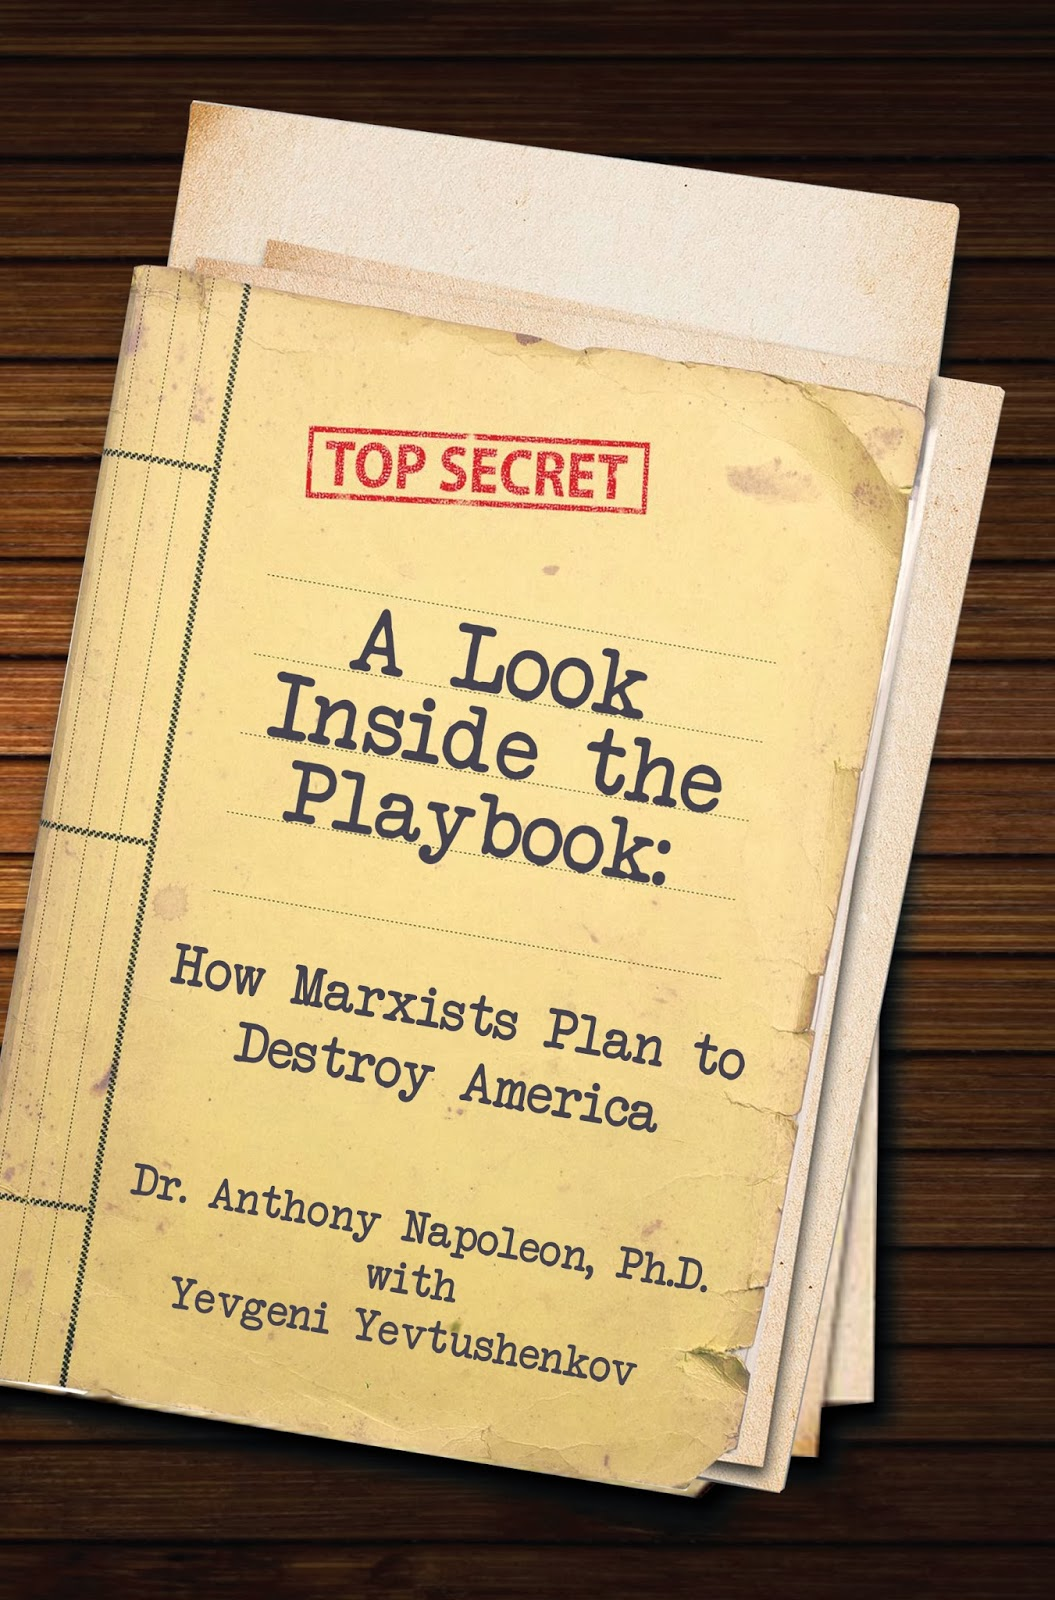 The book connection november 2013 playbook incorporates the actual training manual used by russian operatives trained in the former ussr in playbook you will learn that americas fandeluxe Choice Image